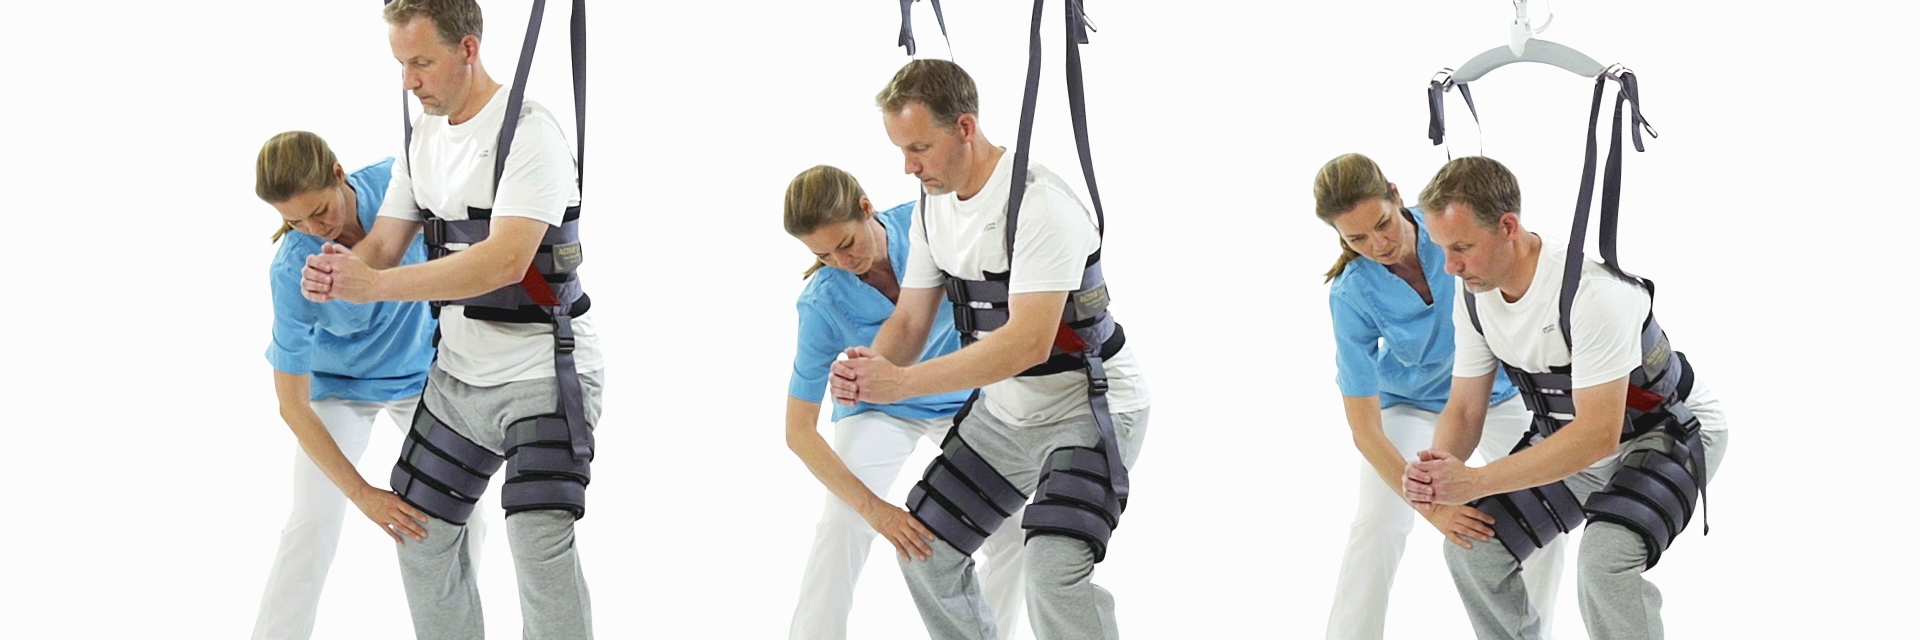 Walking sling with leg cuffs – for early mobilization and balance training